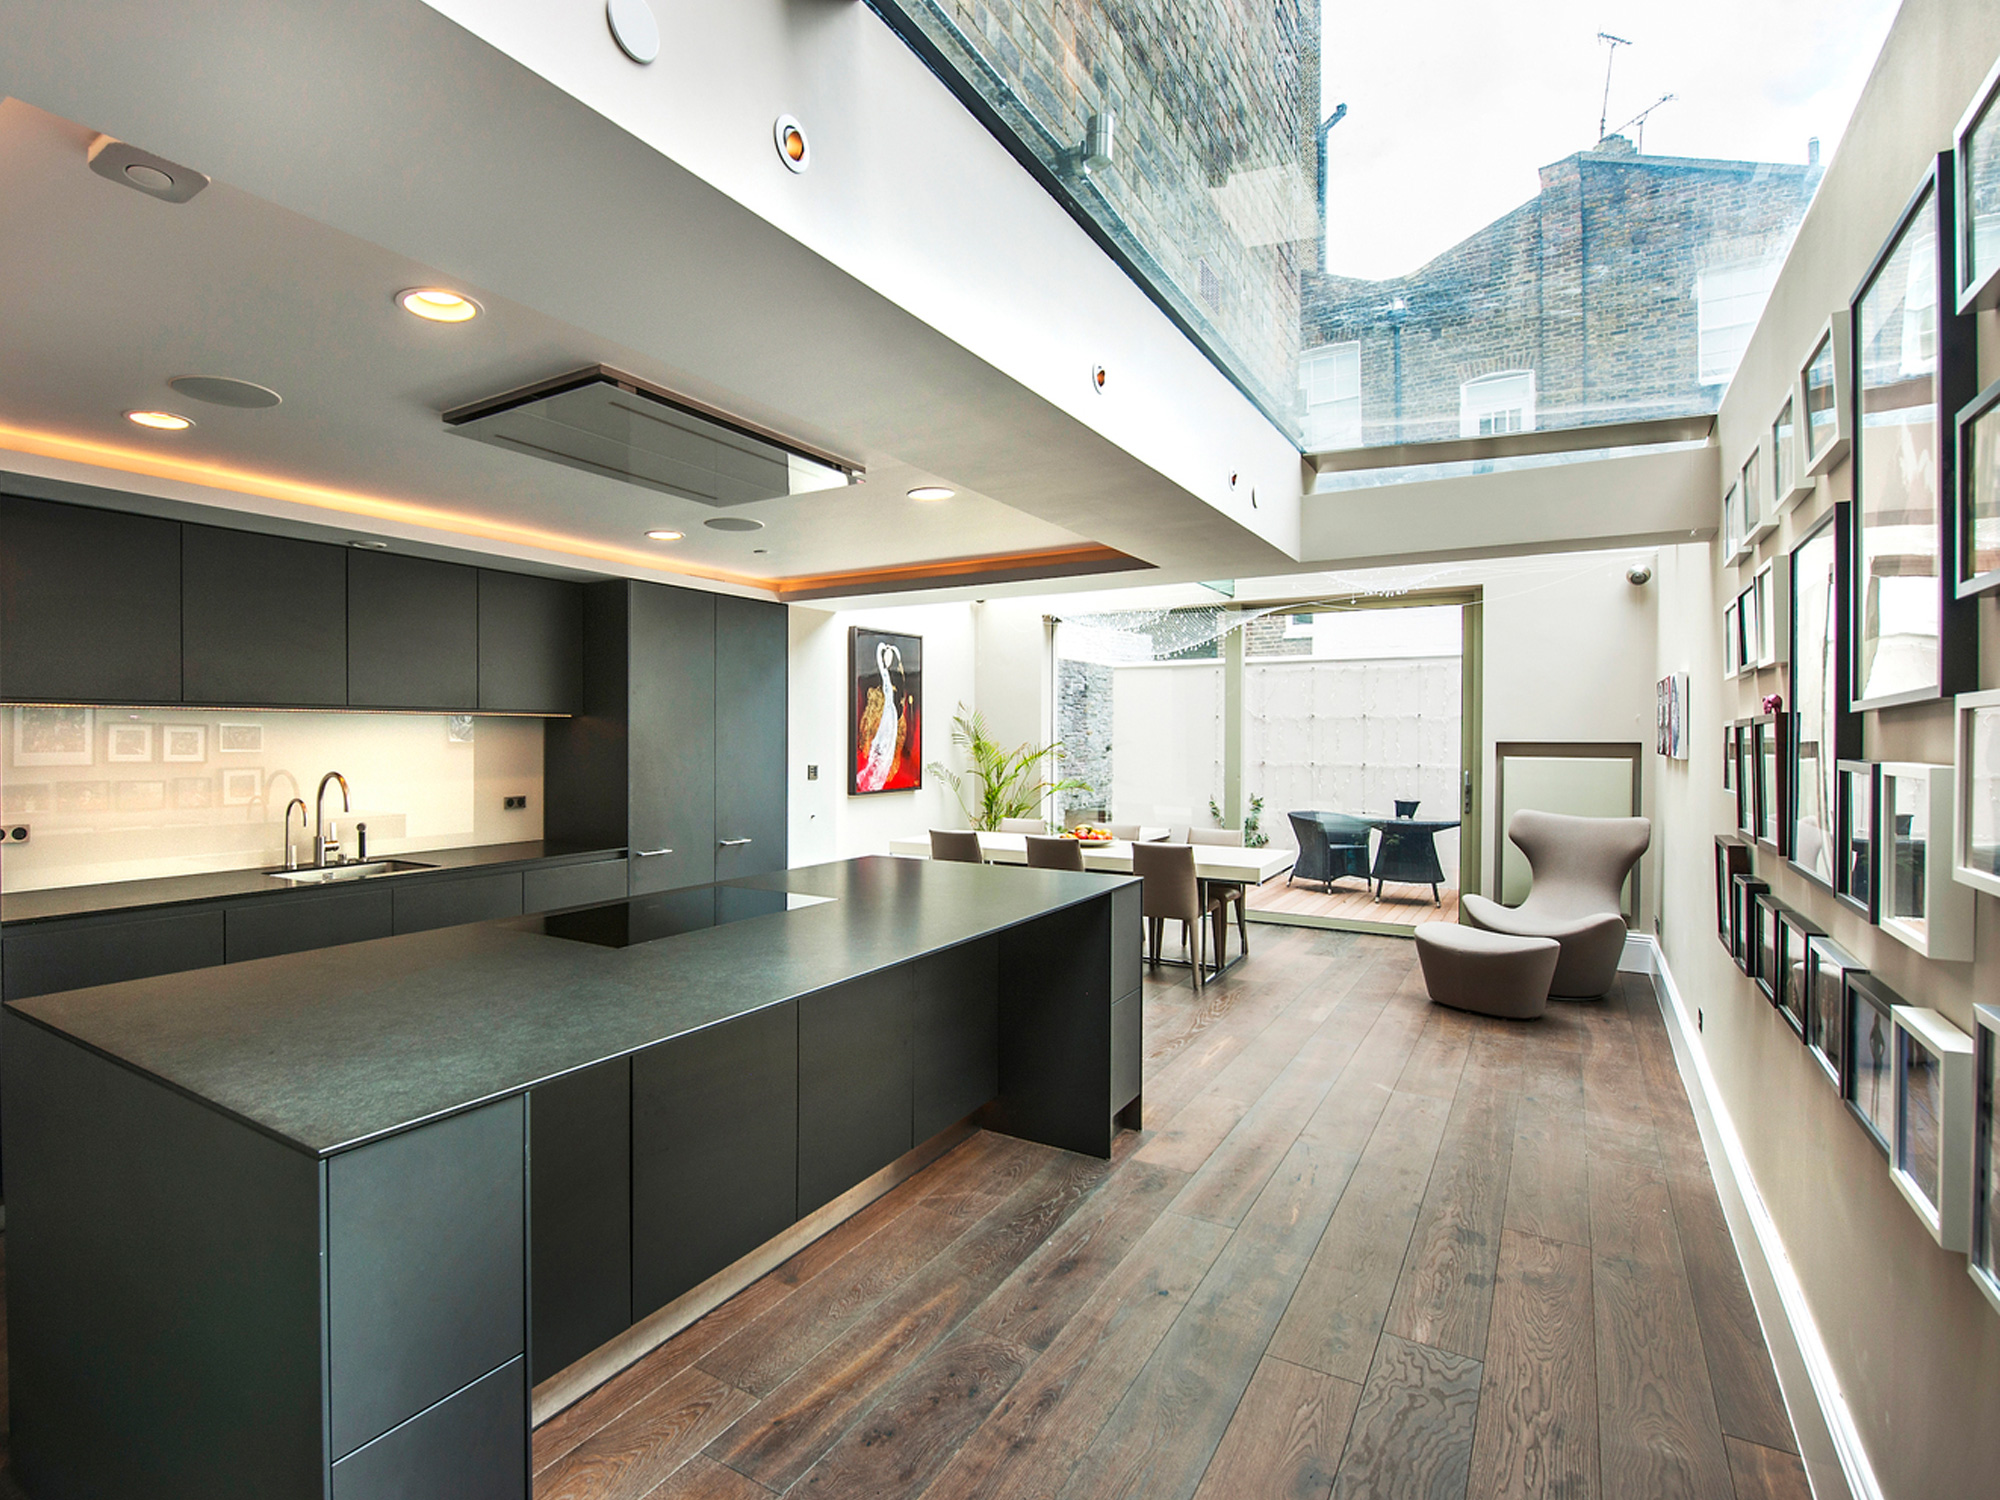 Private residence, London W8. By permission of Hogarth Architects.